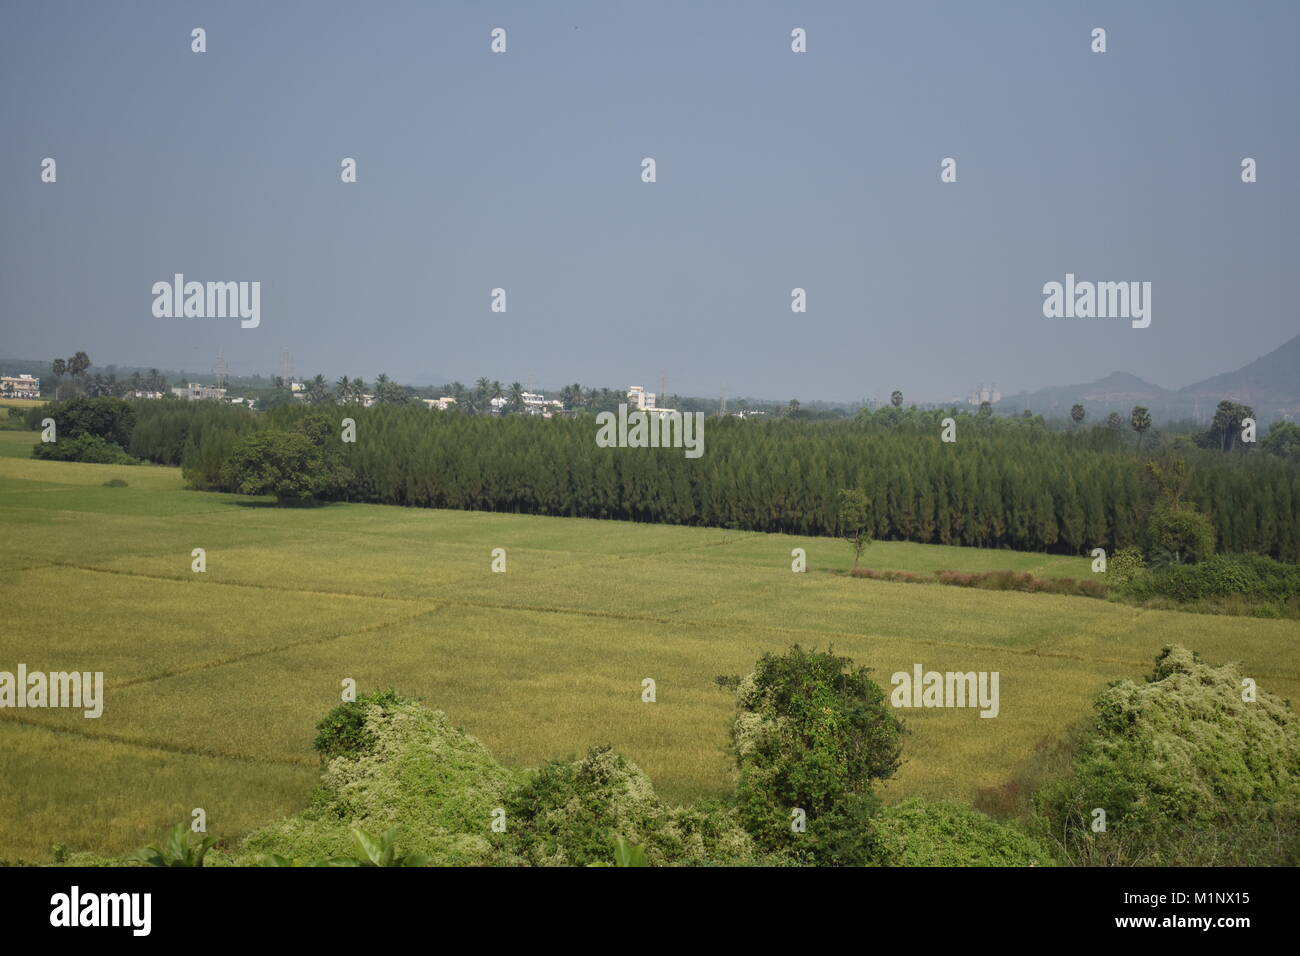 Beautiful Paddy crop looking awesome with casuarina trees. - Stock Image